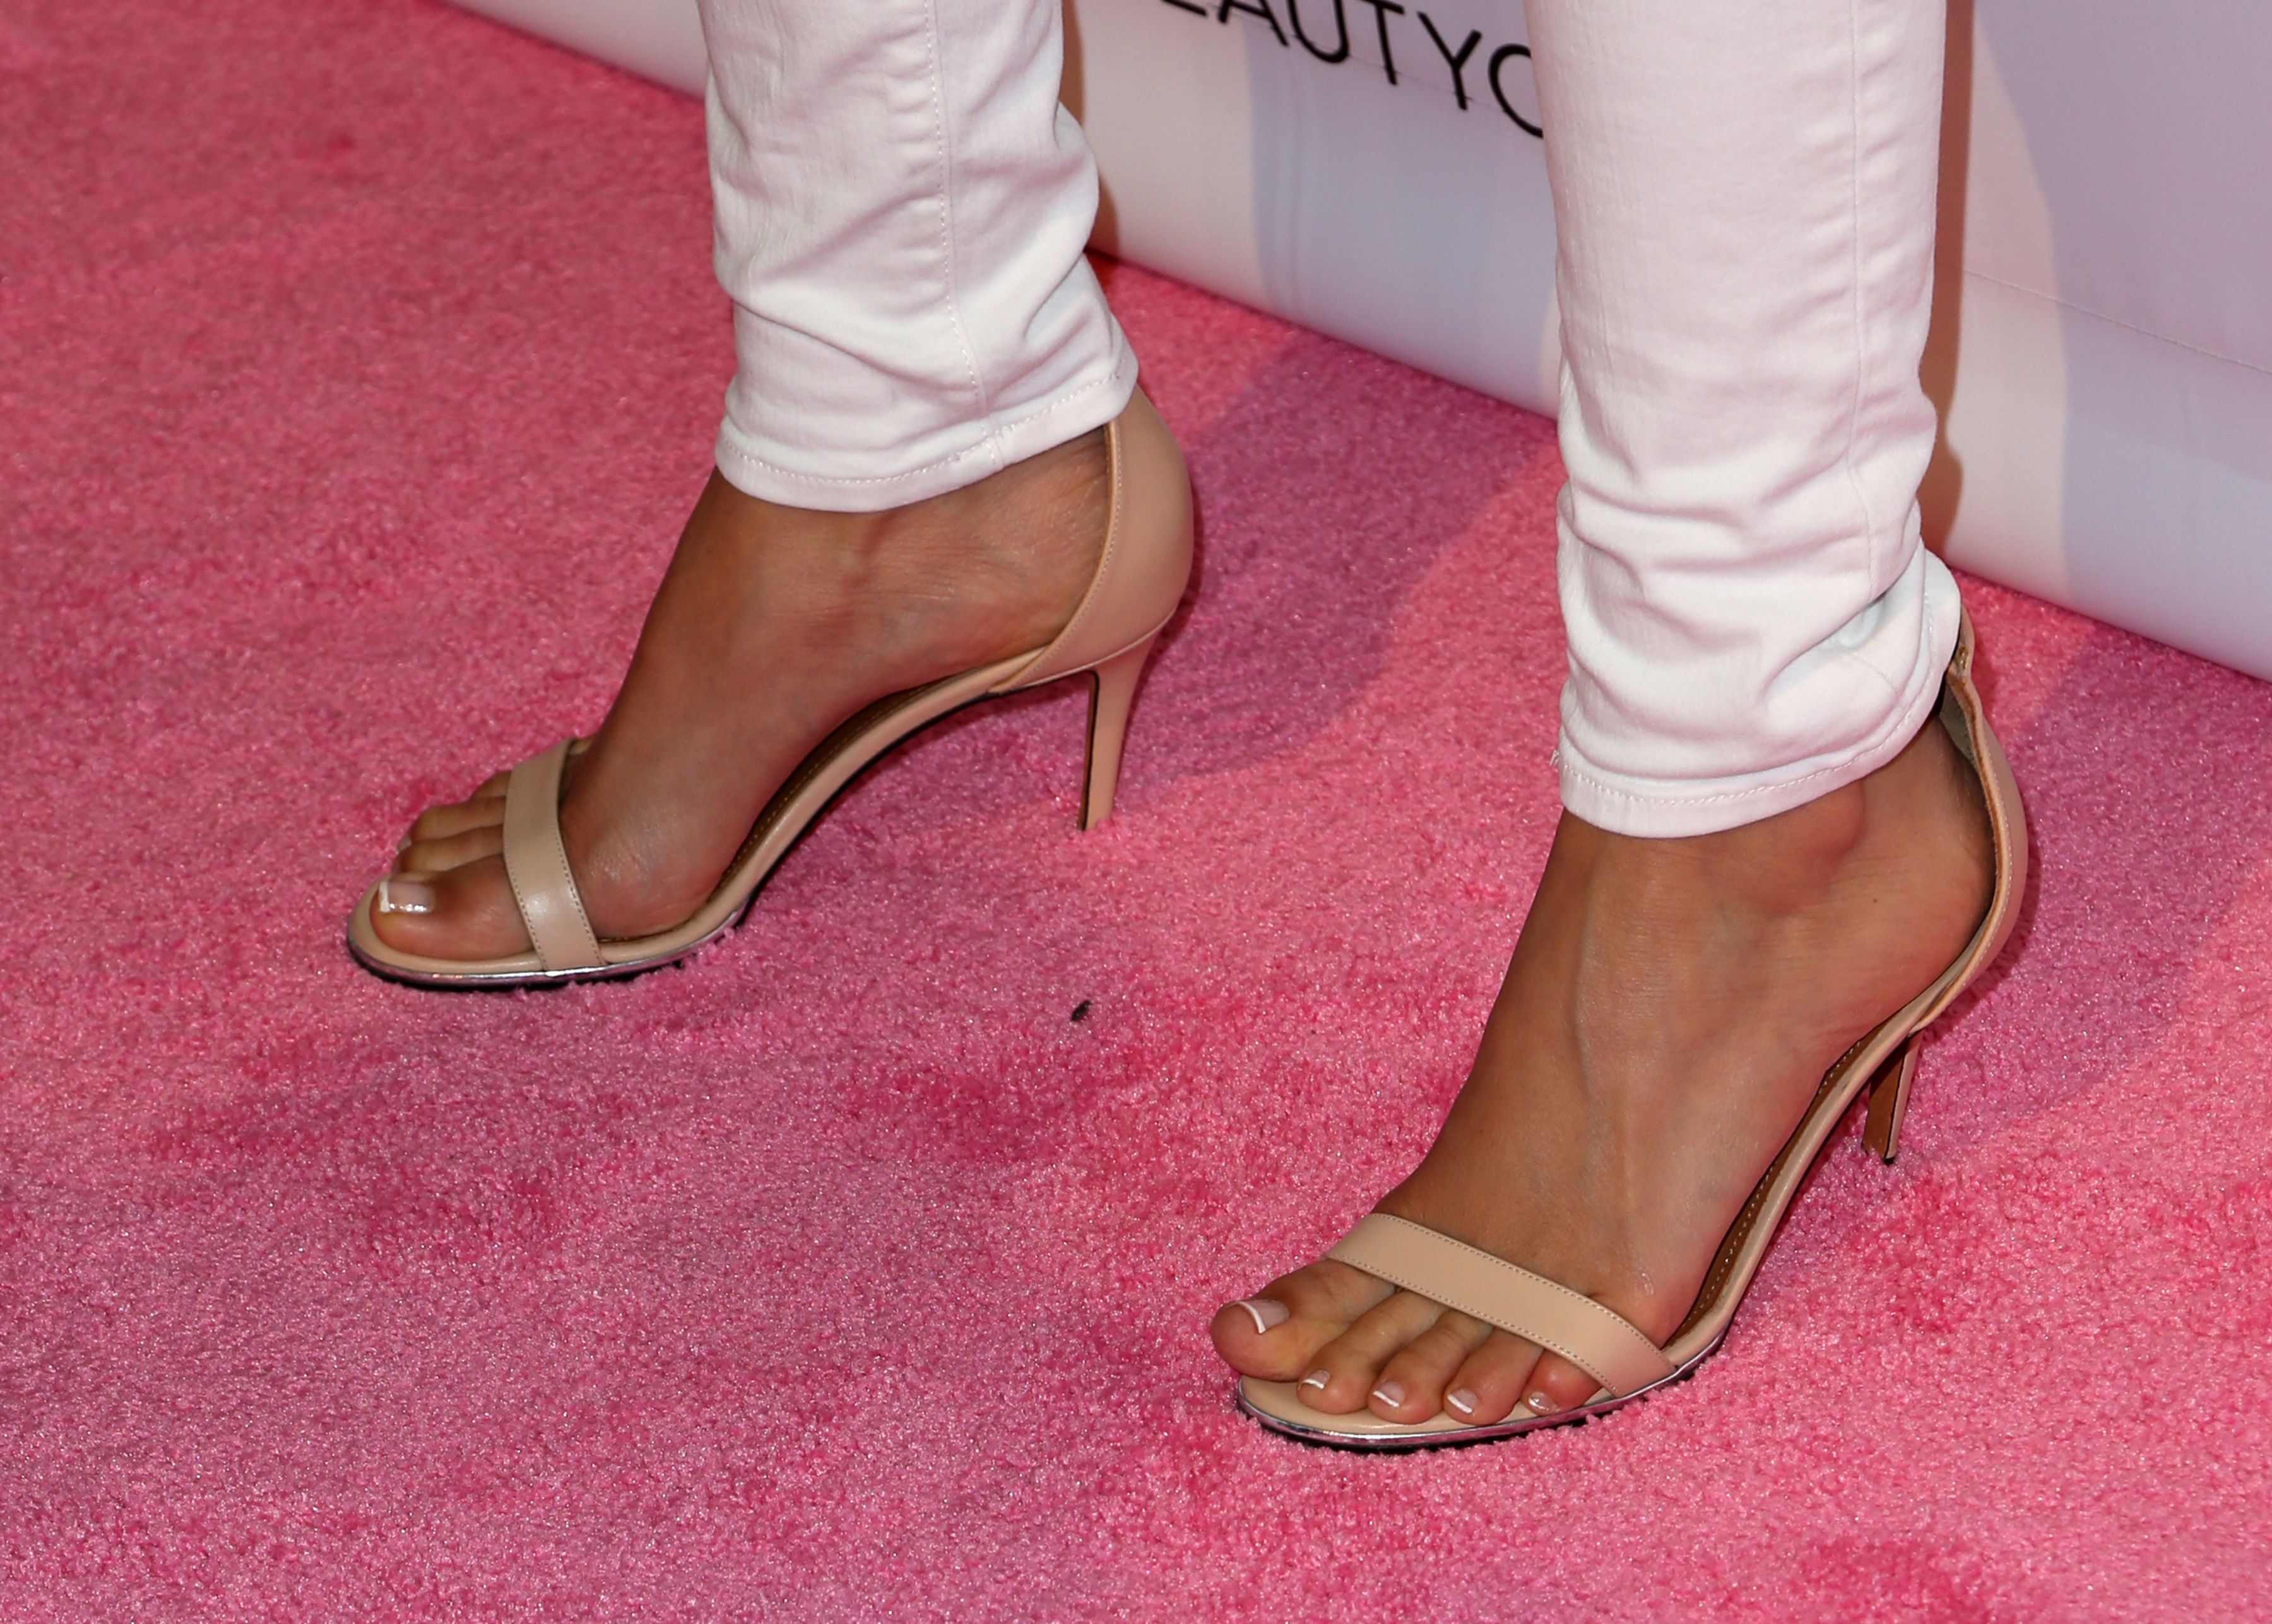 Ashley Tisdale's Feet << wikiFeet